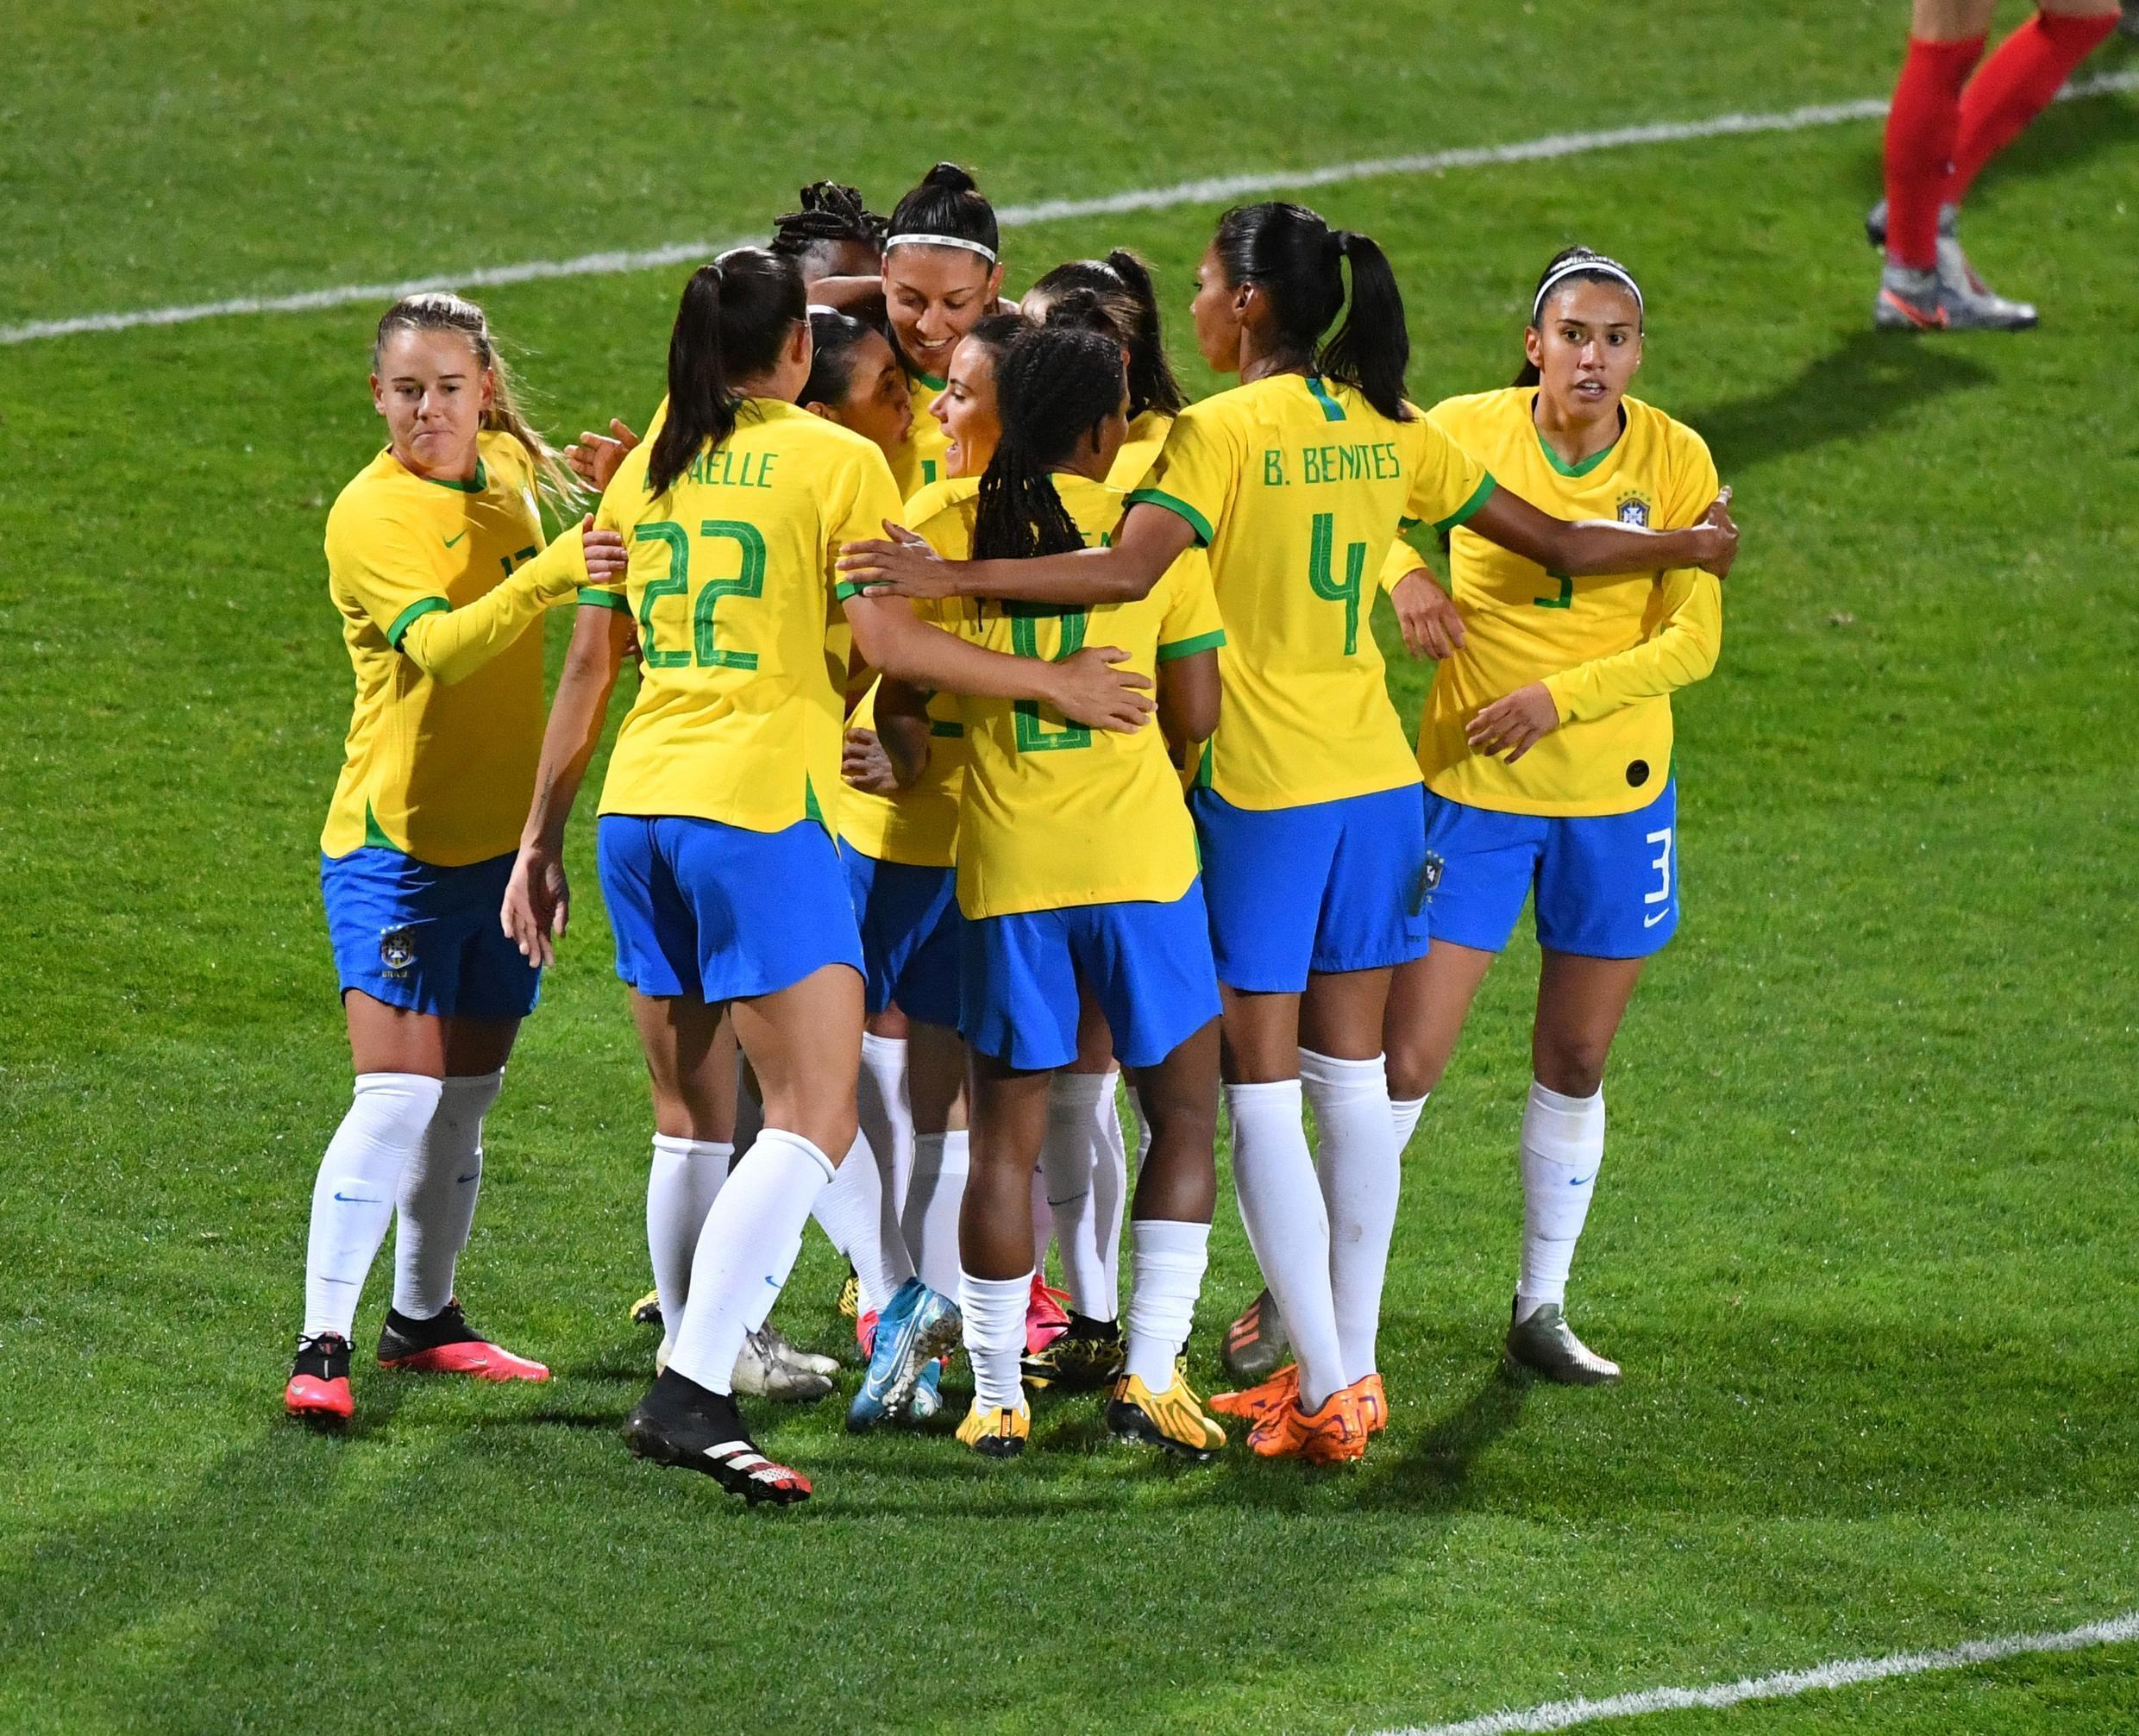 Brazil's Marta Silva (hidden) is congratulated by teammates after scoring a goal during a football match against Canada in Calais, northern France, on March 10, 2020.